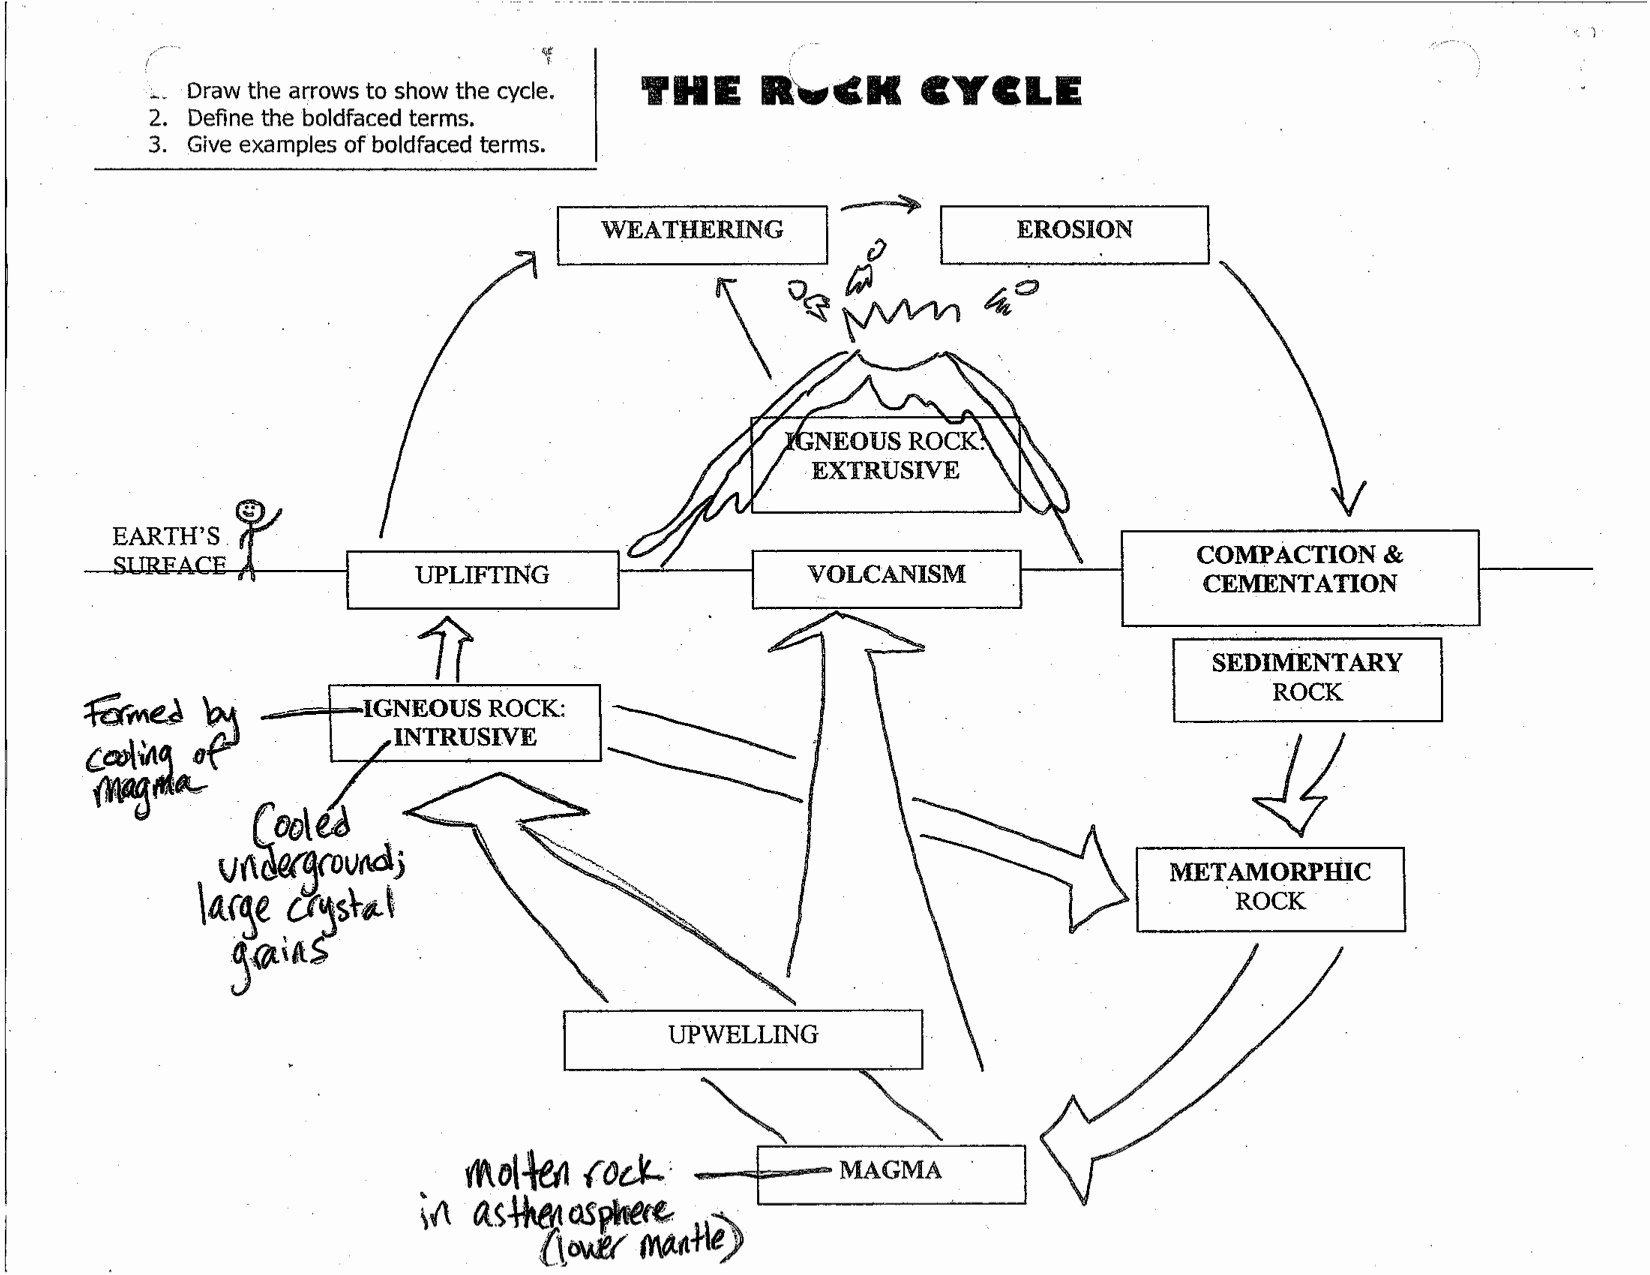 Rock Cycle Diagram Worksheet Awesome Worksheet Rock Cycle Diagram Worksheet Grass Fedjp